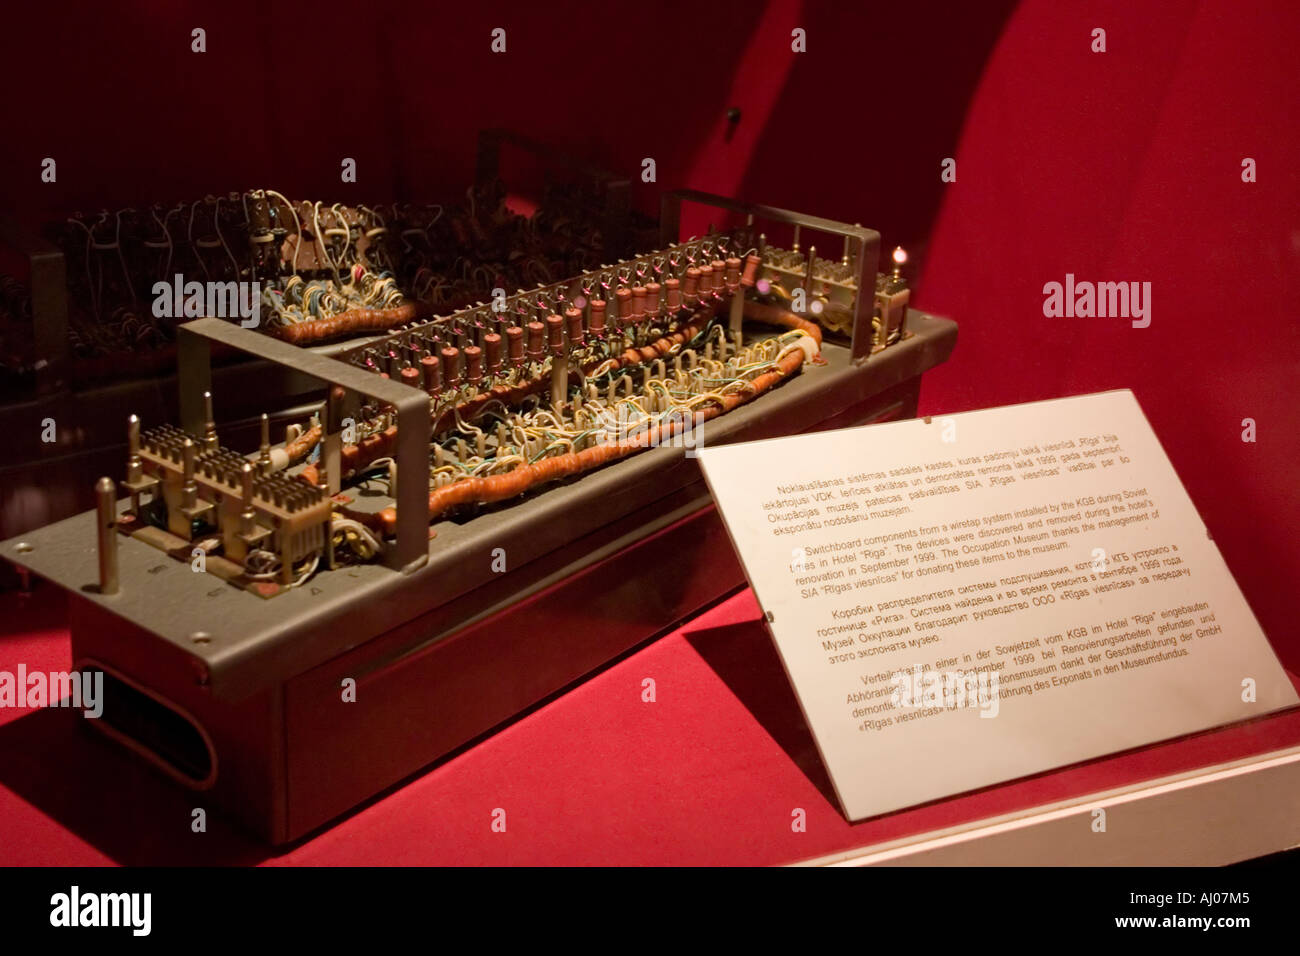 KGB wiretap system at Occupation Museum, Riga, Latvia, EU - Stock Image